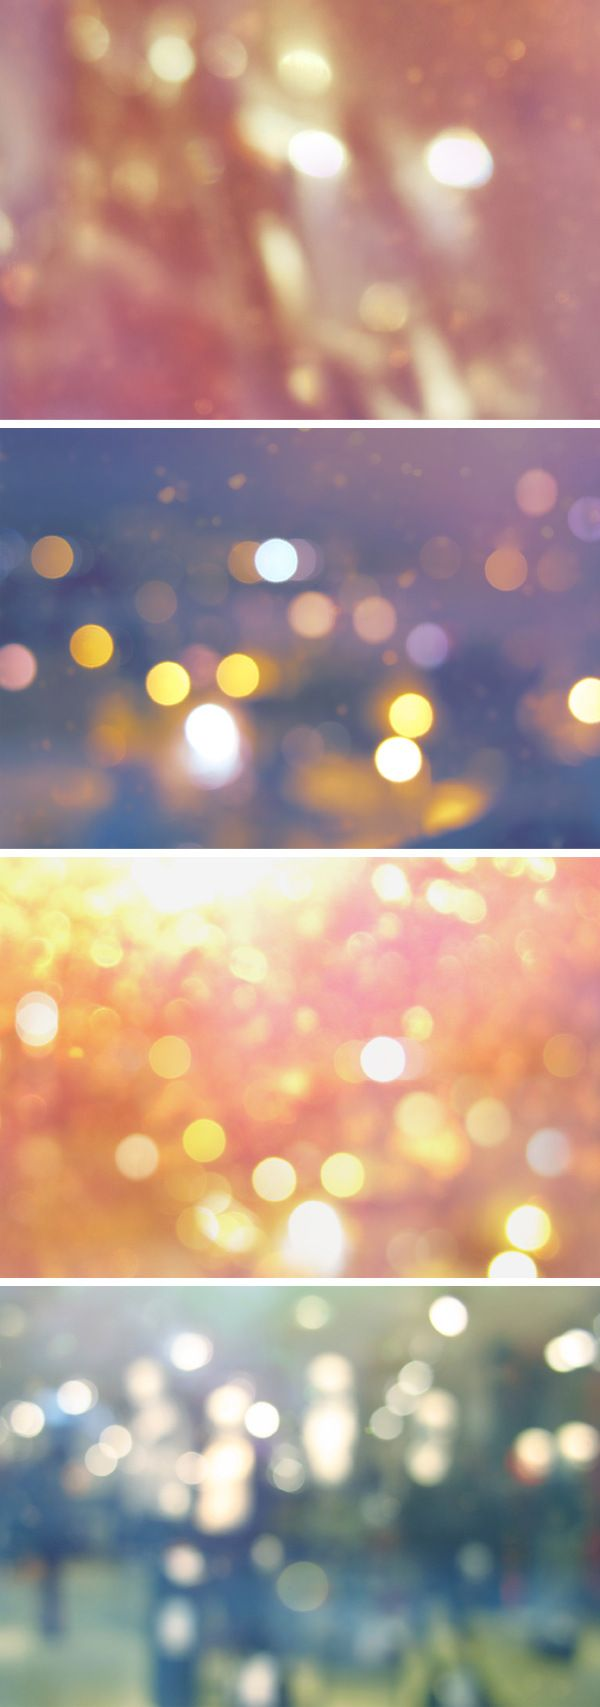 Free #Bokeh #blurred #Backgrounds Vol.1